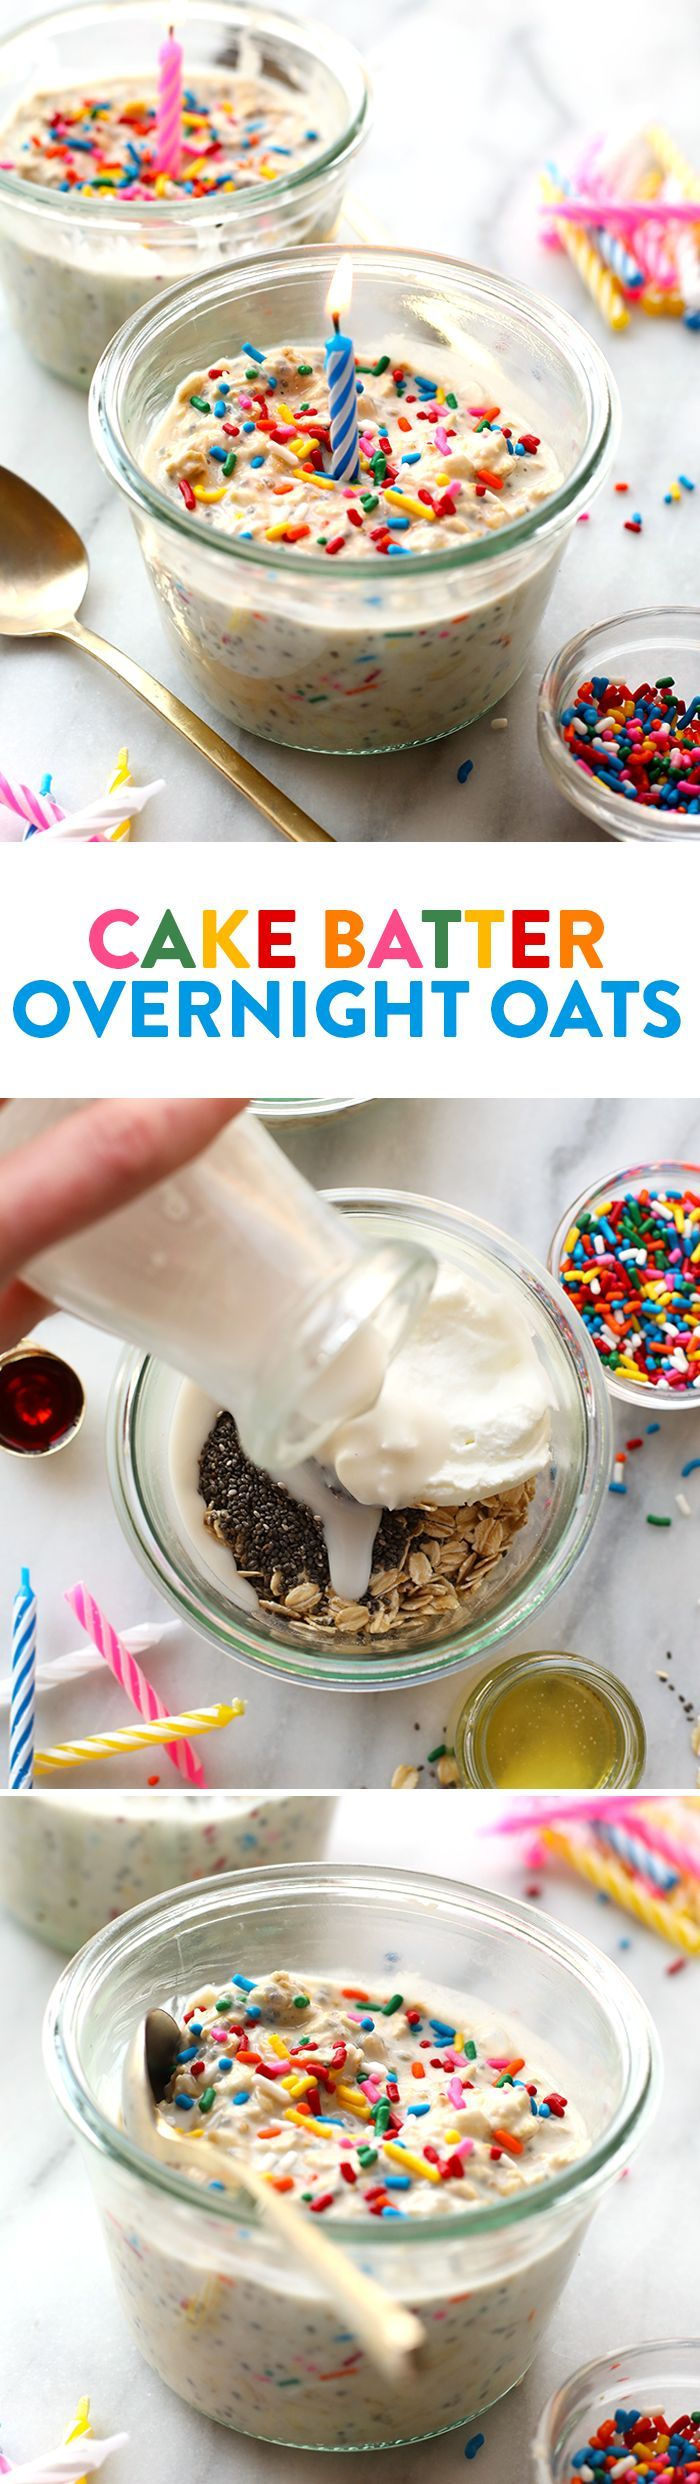 Celebrate Your Birthday The Right Way And Start Off With These HEALTHY Cake Batter Overnight Oats Theyre Prepped In Less Than 5 Minutes